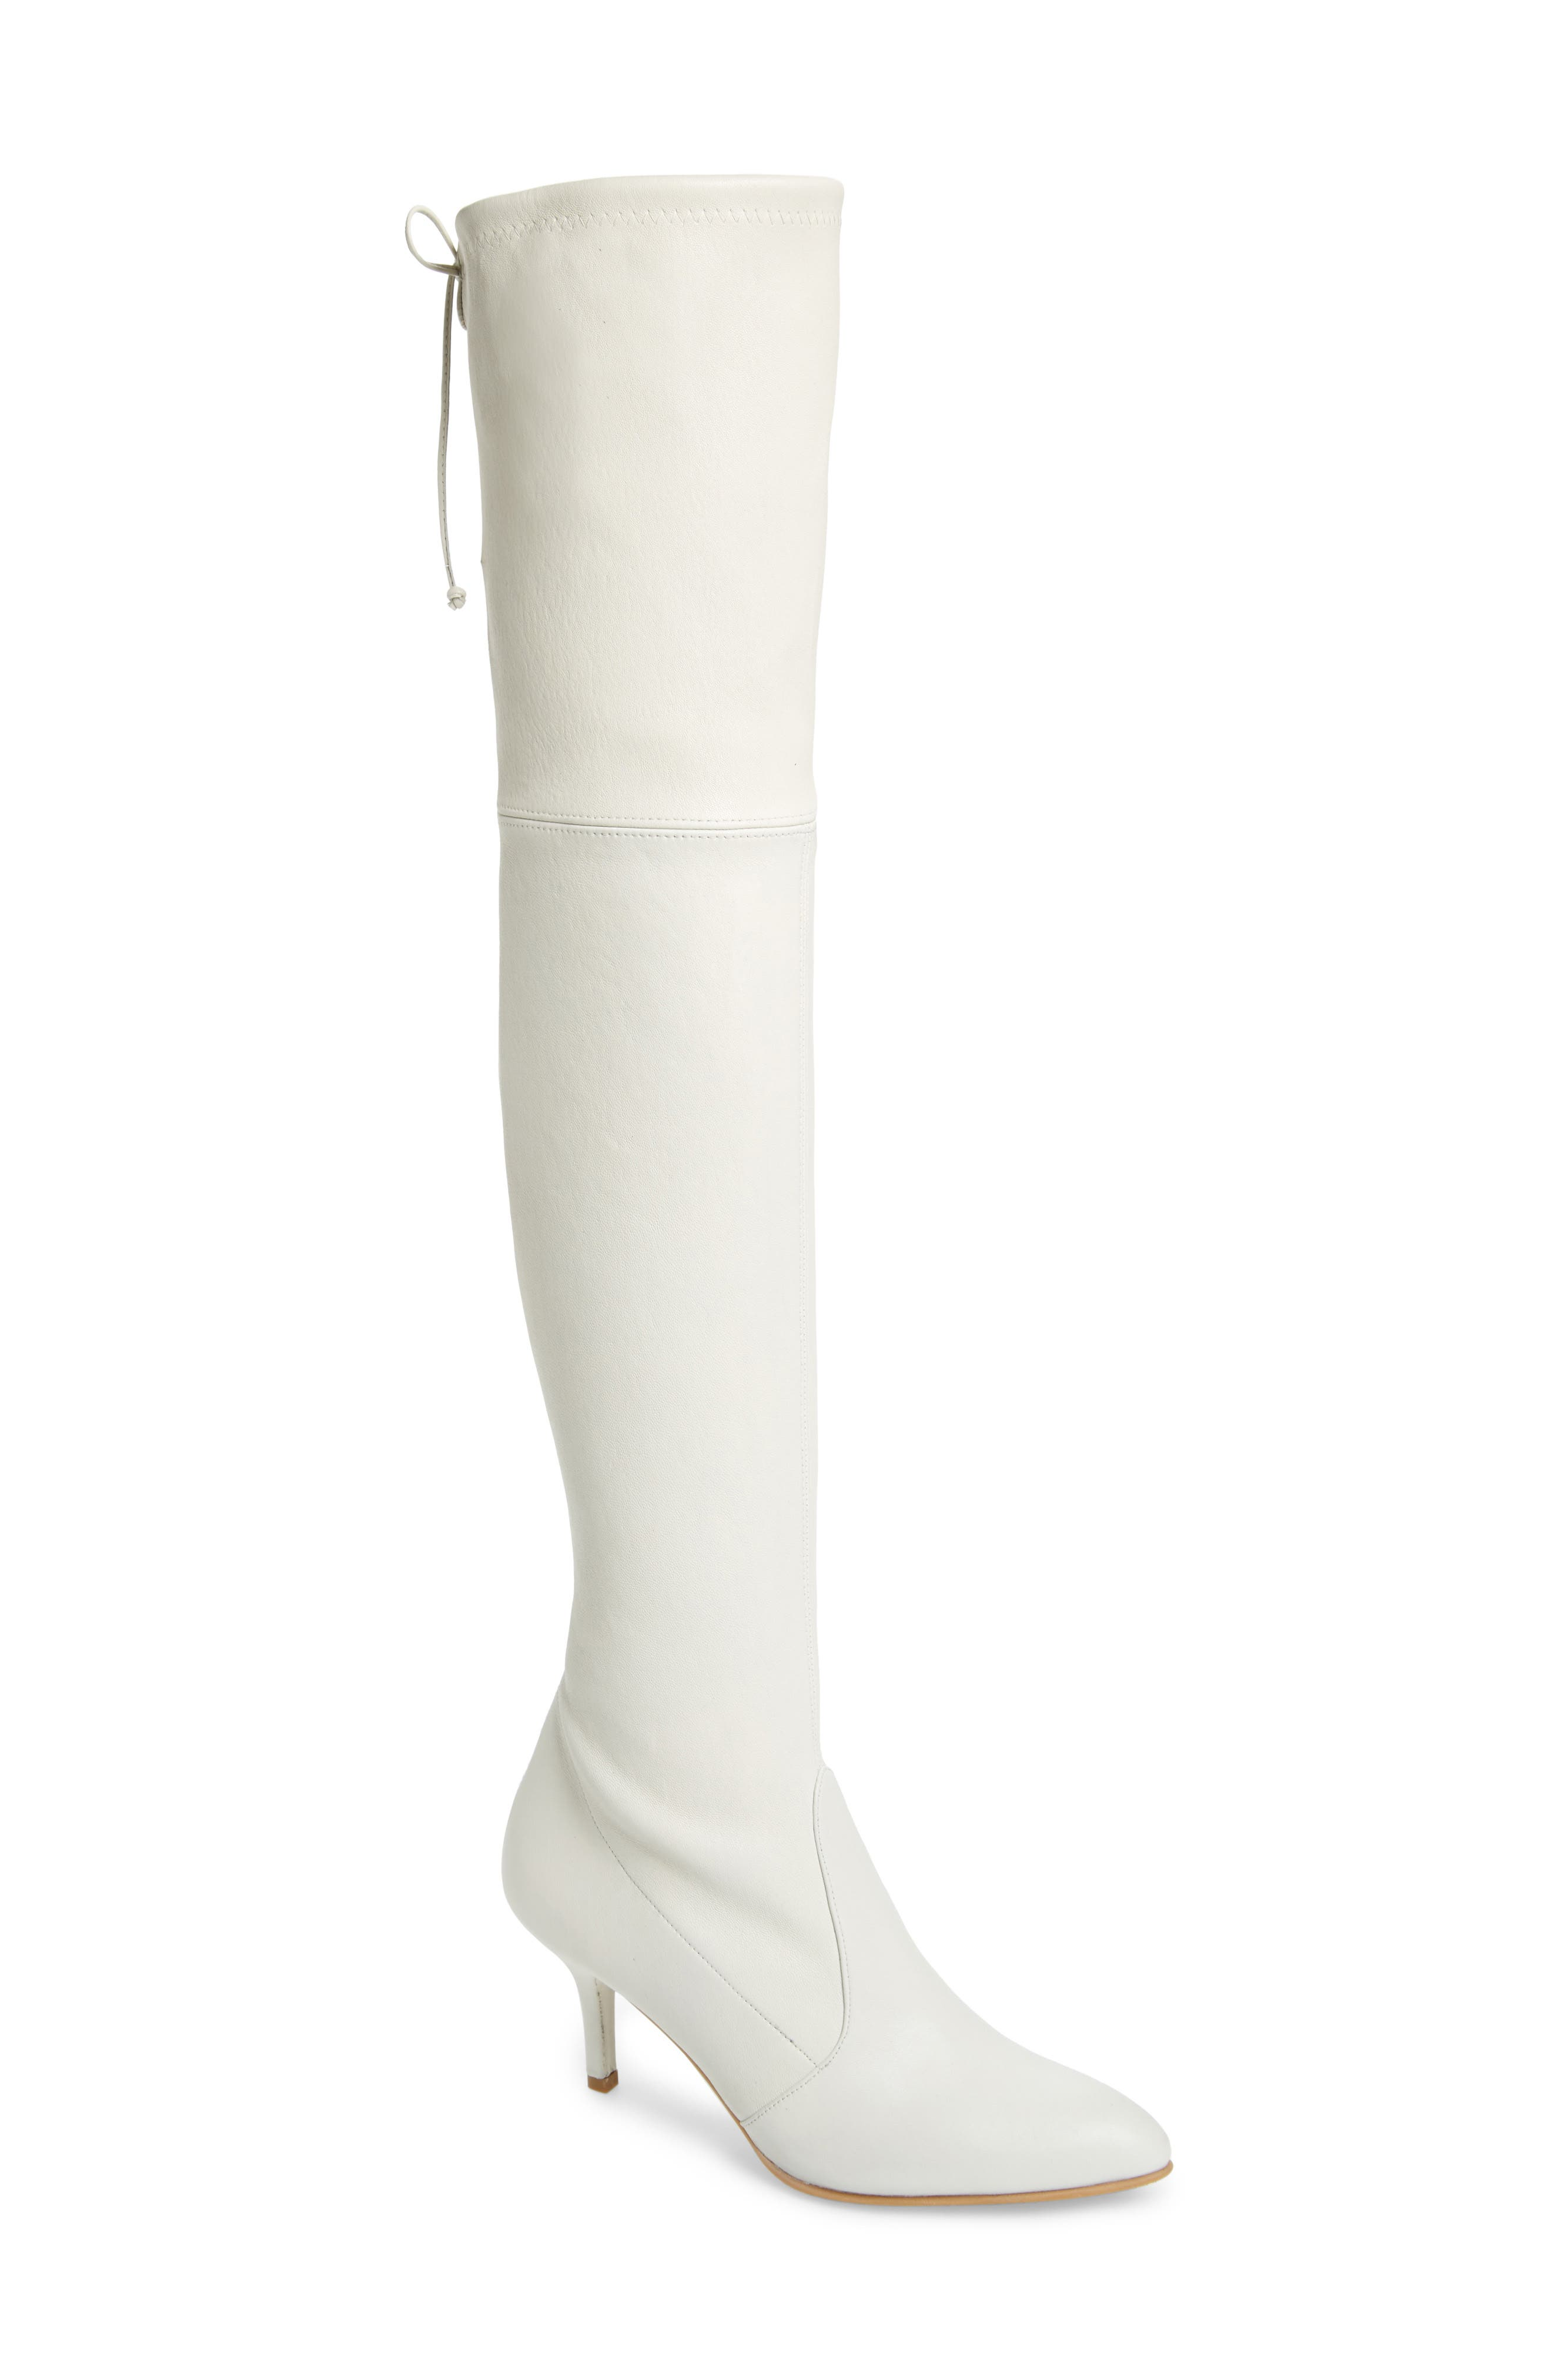 Image of Stuart Weitzman Tiemodel Over-the-Knee Stretch Boot - Multiple Widths Available